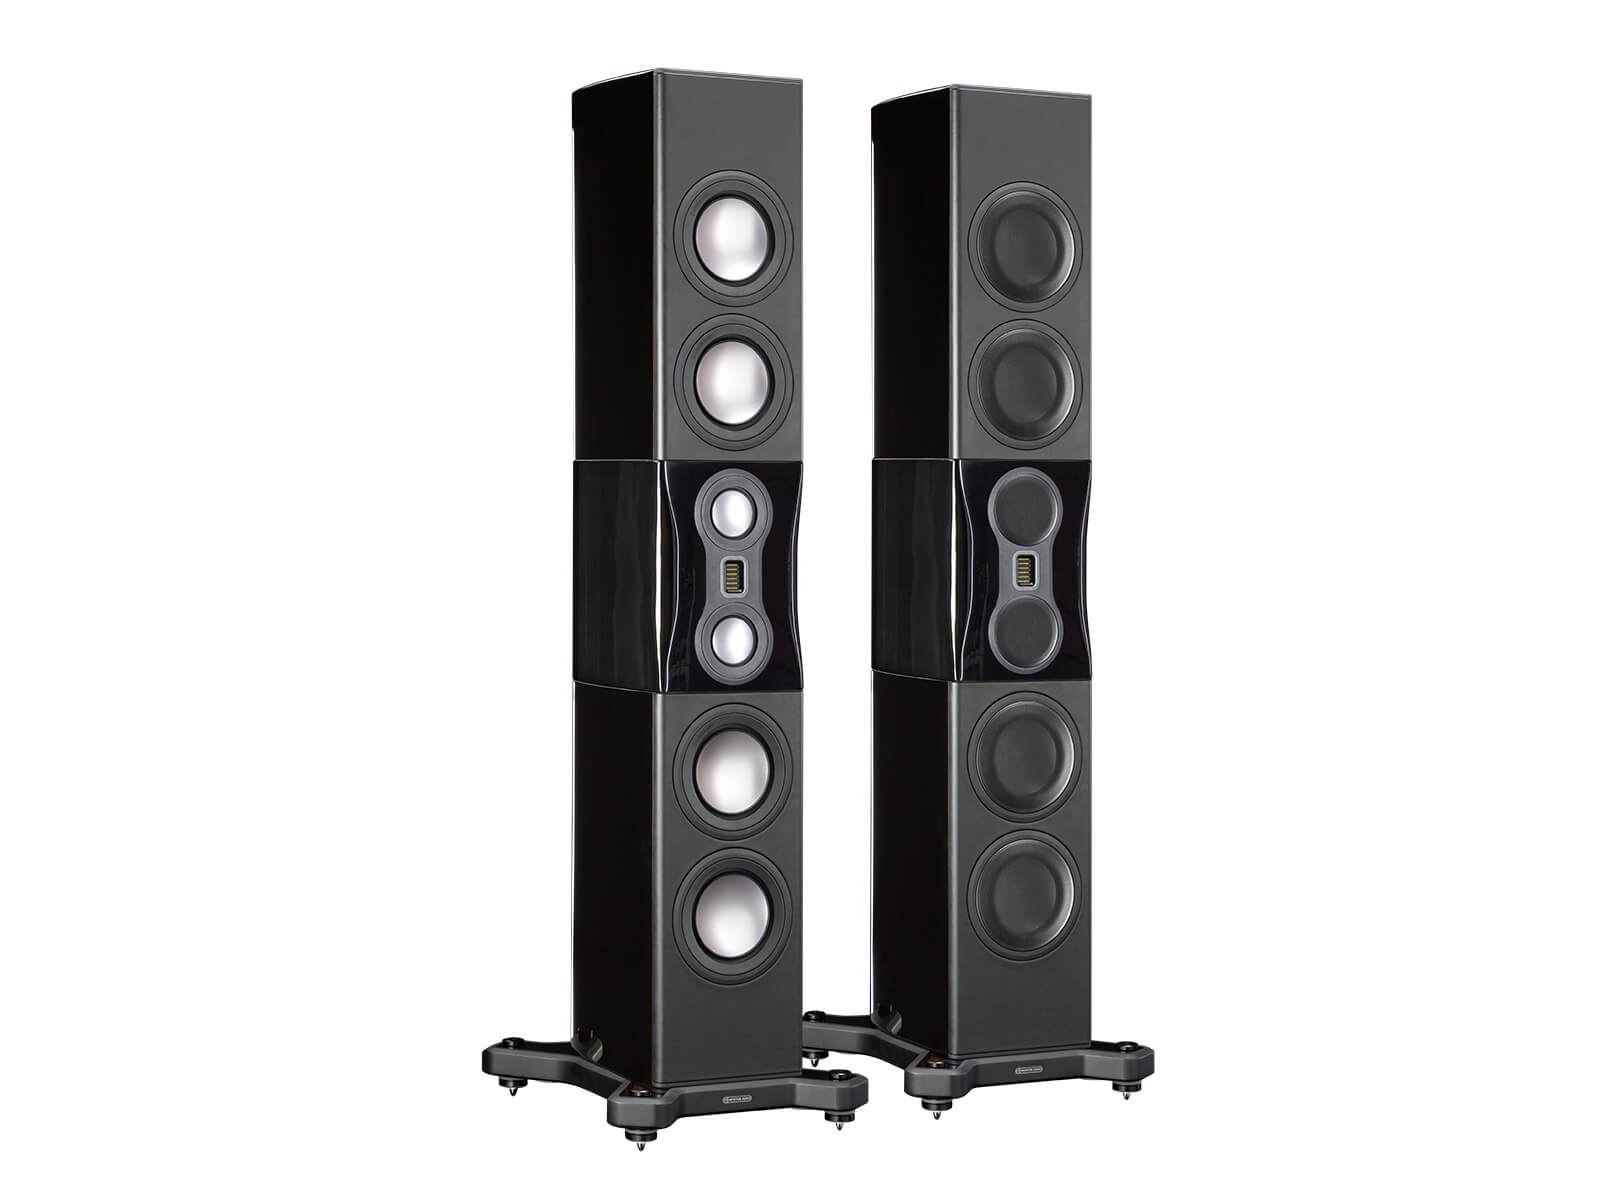 Platinum PL500 II, floorstanding speakers, featuring a grille and an ebony real wood veneer finish.